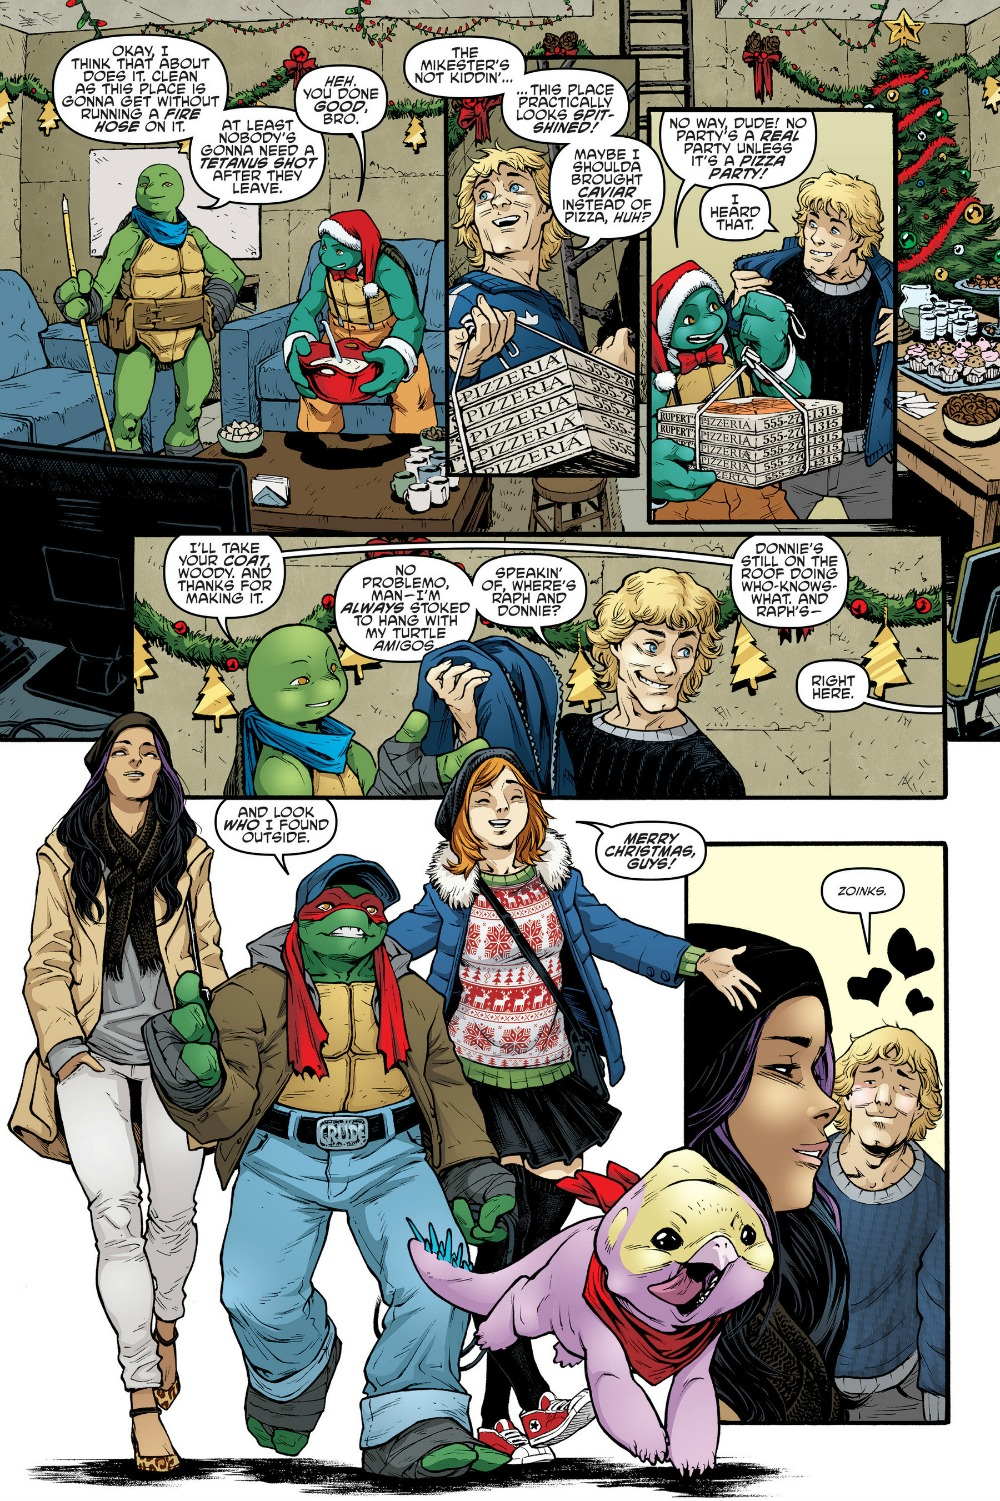 A teenage mutant ninja turtles 65 review sewer christmas party tmnt 65 pepperoni sciox Image collections